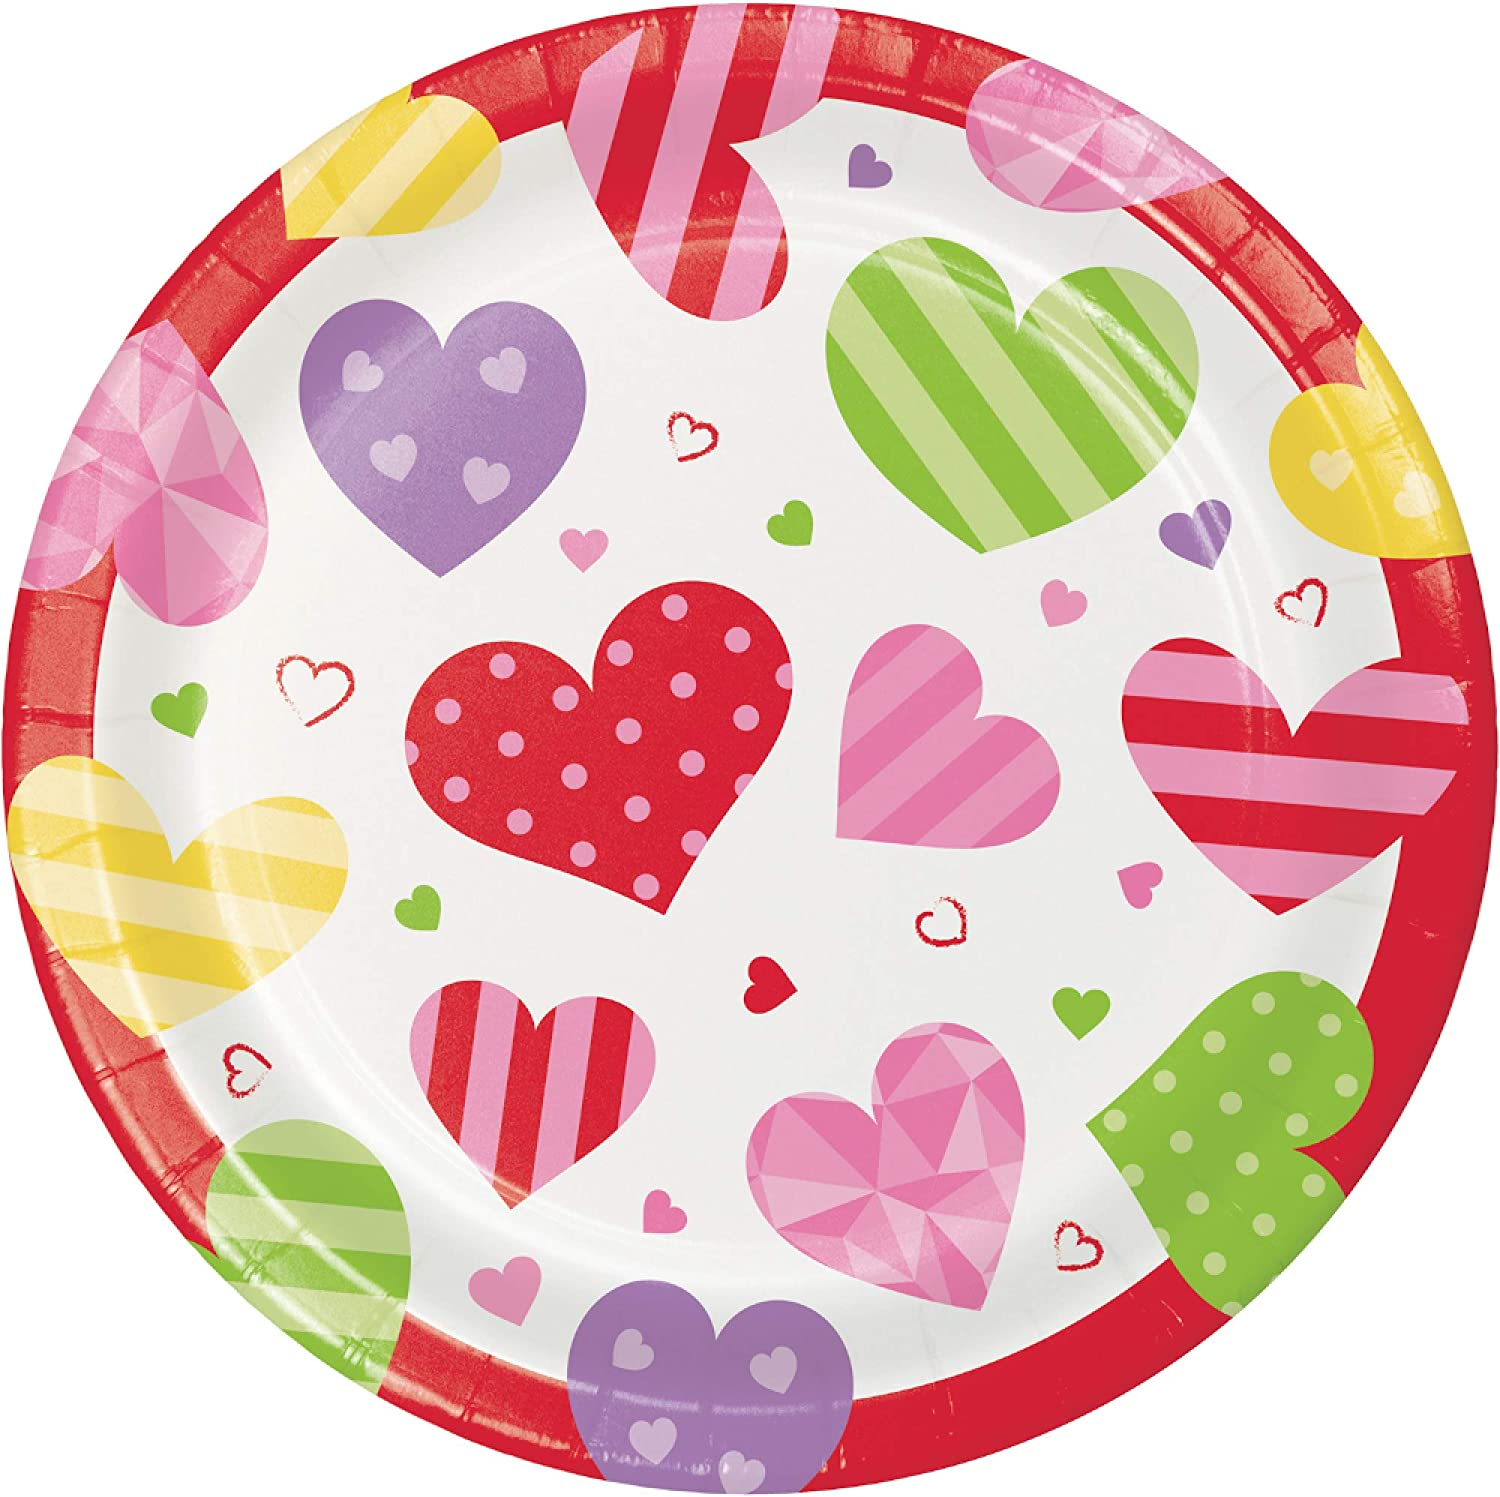 Bundle Includes Dessert Plates and Lunch Napkins Valentine Hearts Design Valentines Day Party Supply Pack for 16 People